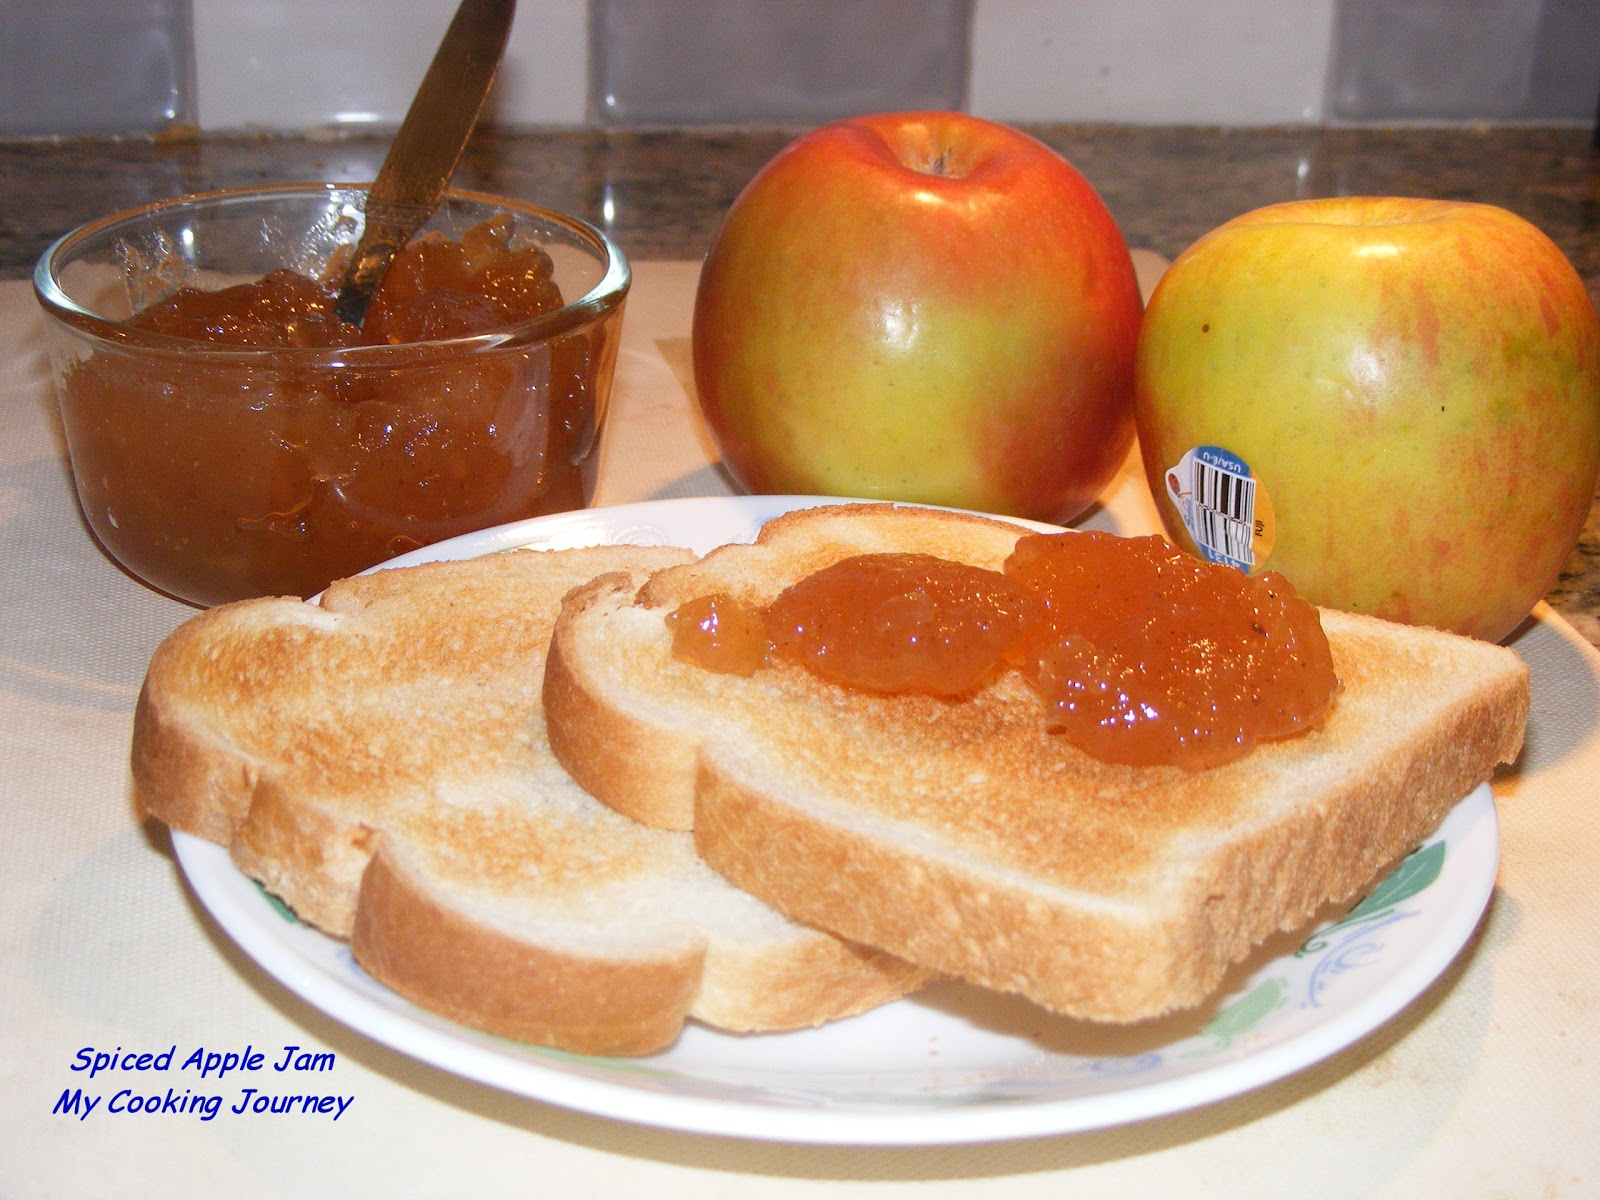 Apple Recipes - Recipes to make using Apples